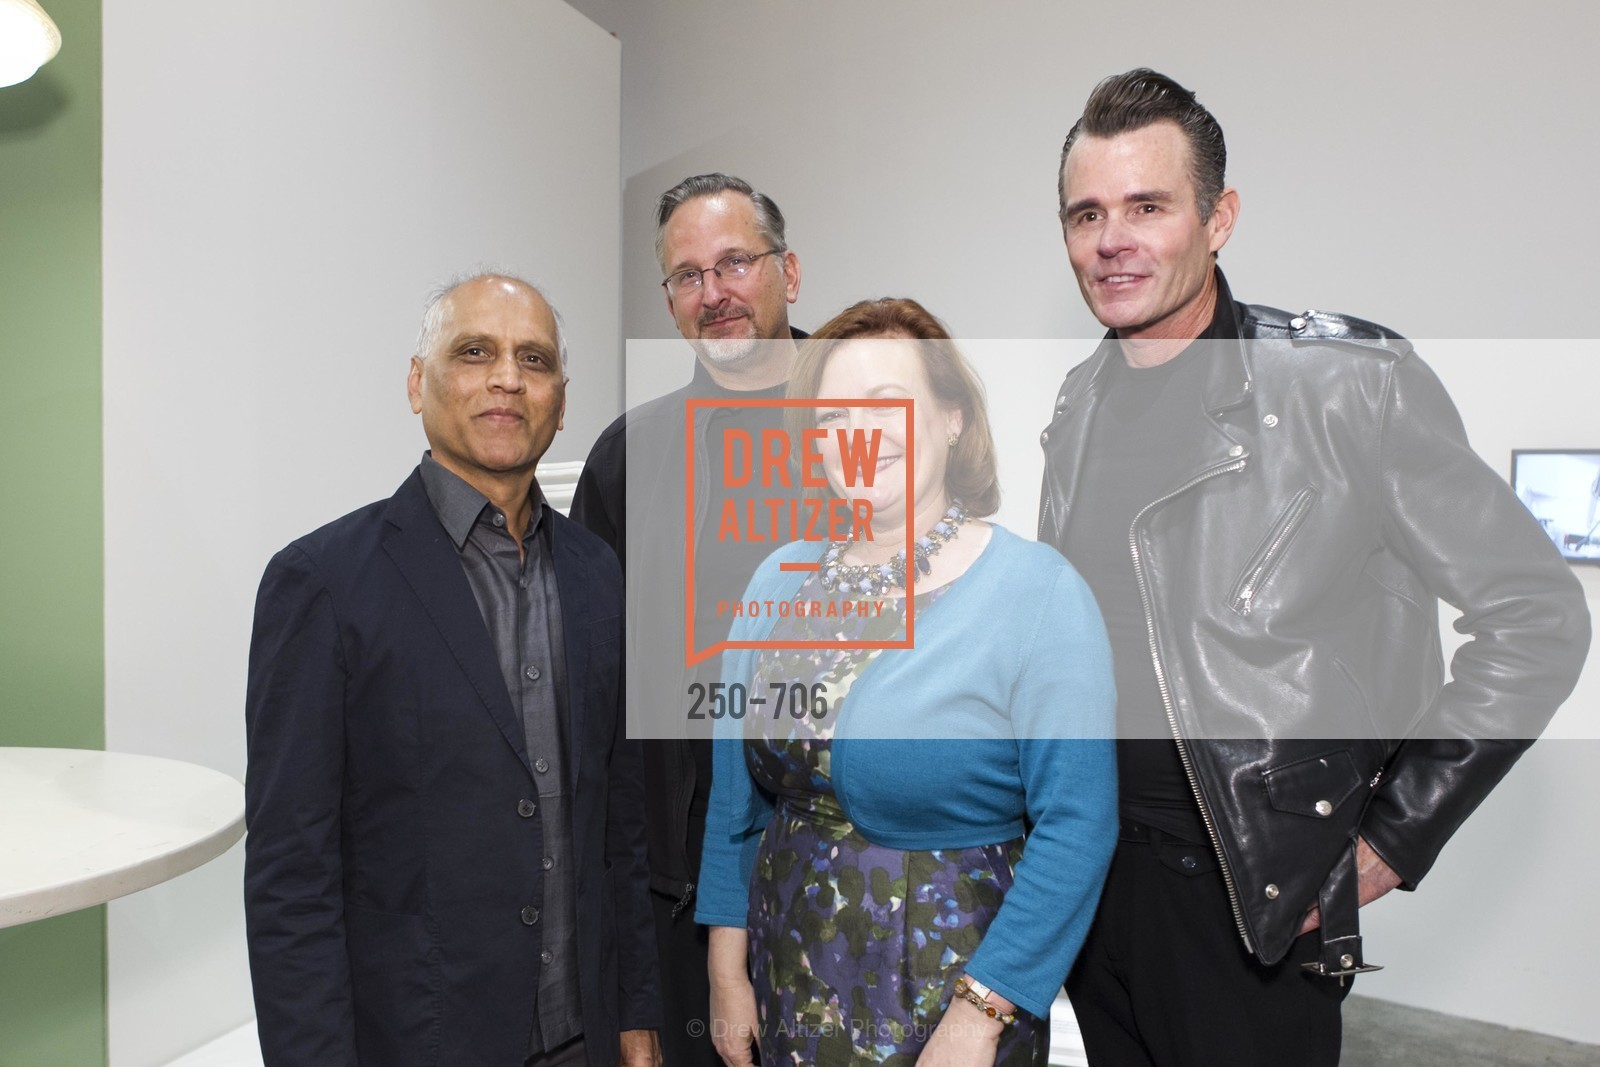 Zahid Sardar, Mark Macy, Jennifer Raiser, Craig Walters, Exhibit Opening at the MUSEUM OF CRAFT AND DESIGN - Hands Off: New Dutch Design at the Confluence of Technology & Craft, US, May 8th, 2015,Drew Altizer, Drew Altizer Photography, full-service agency, private events, San Francisco photographer, photographer california